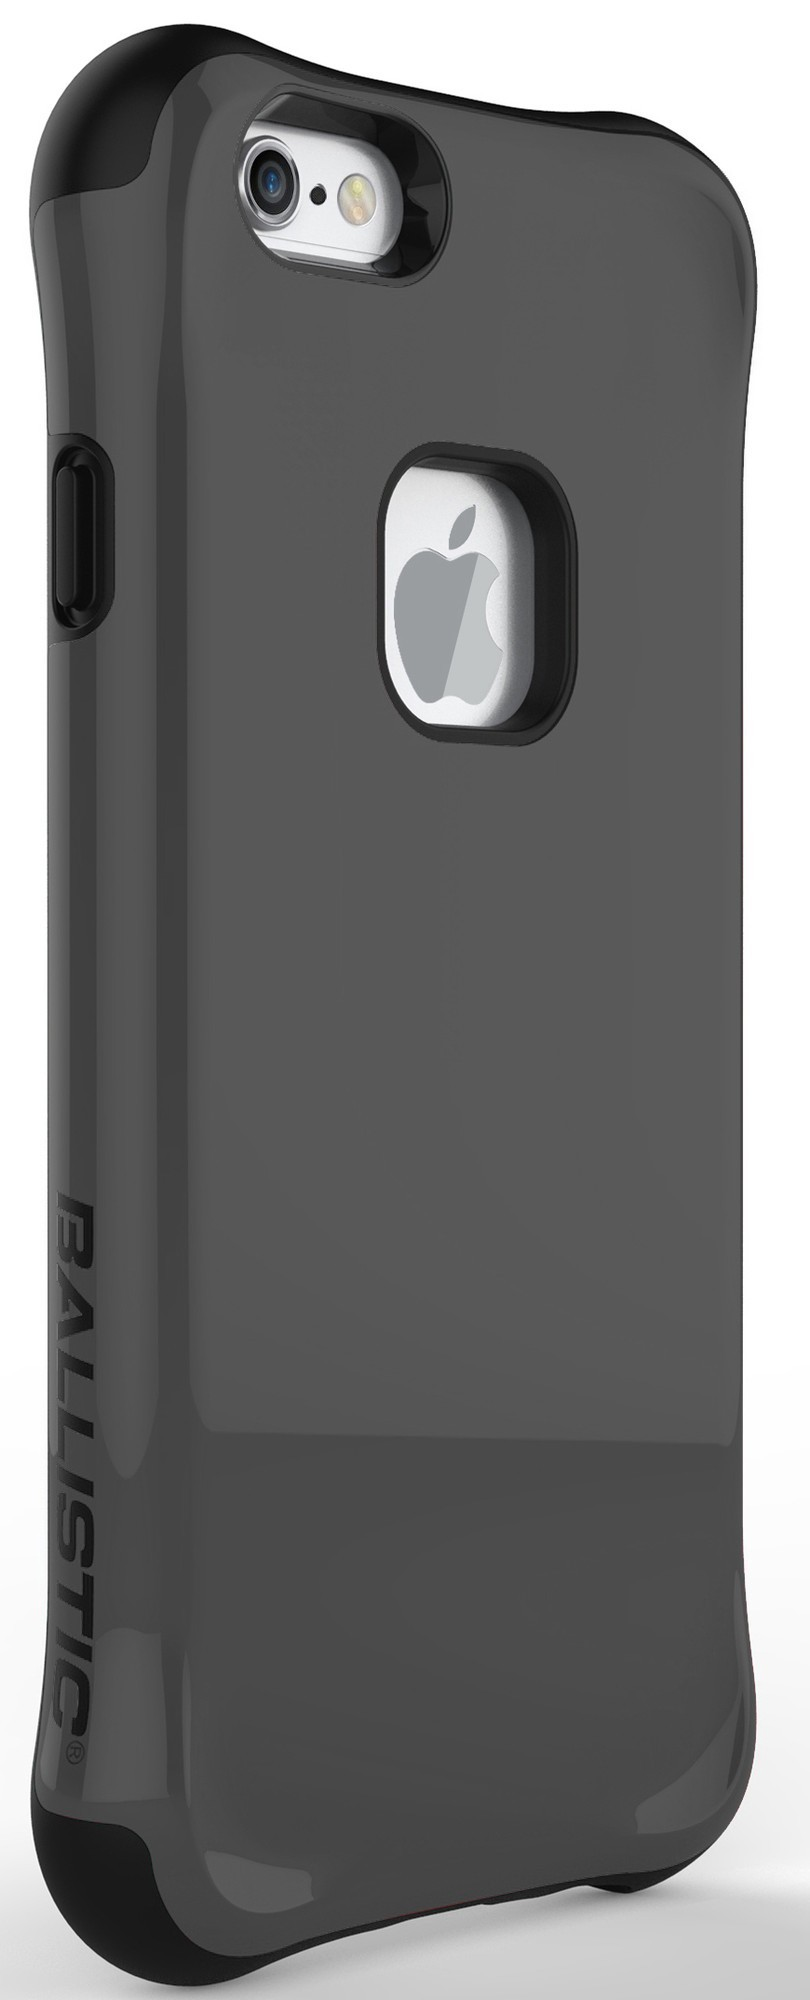 Ballistic Urbanite iPhone 6 / 6S Grey / Black